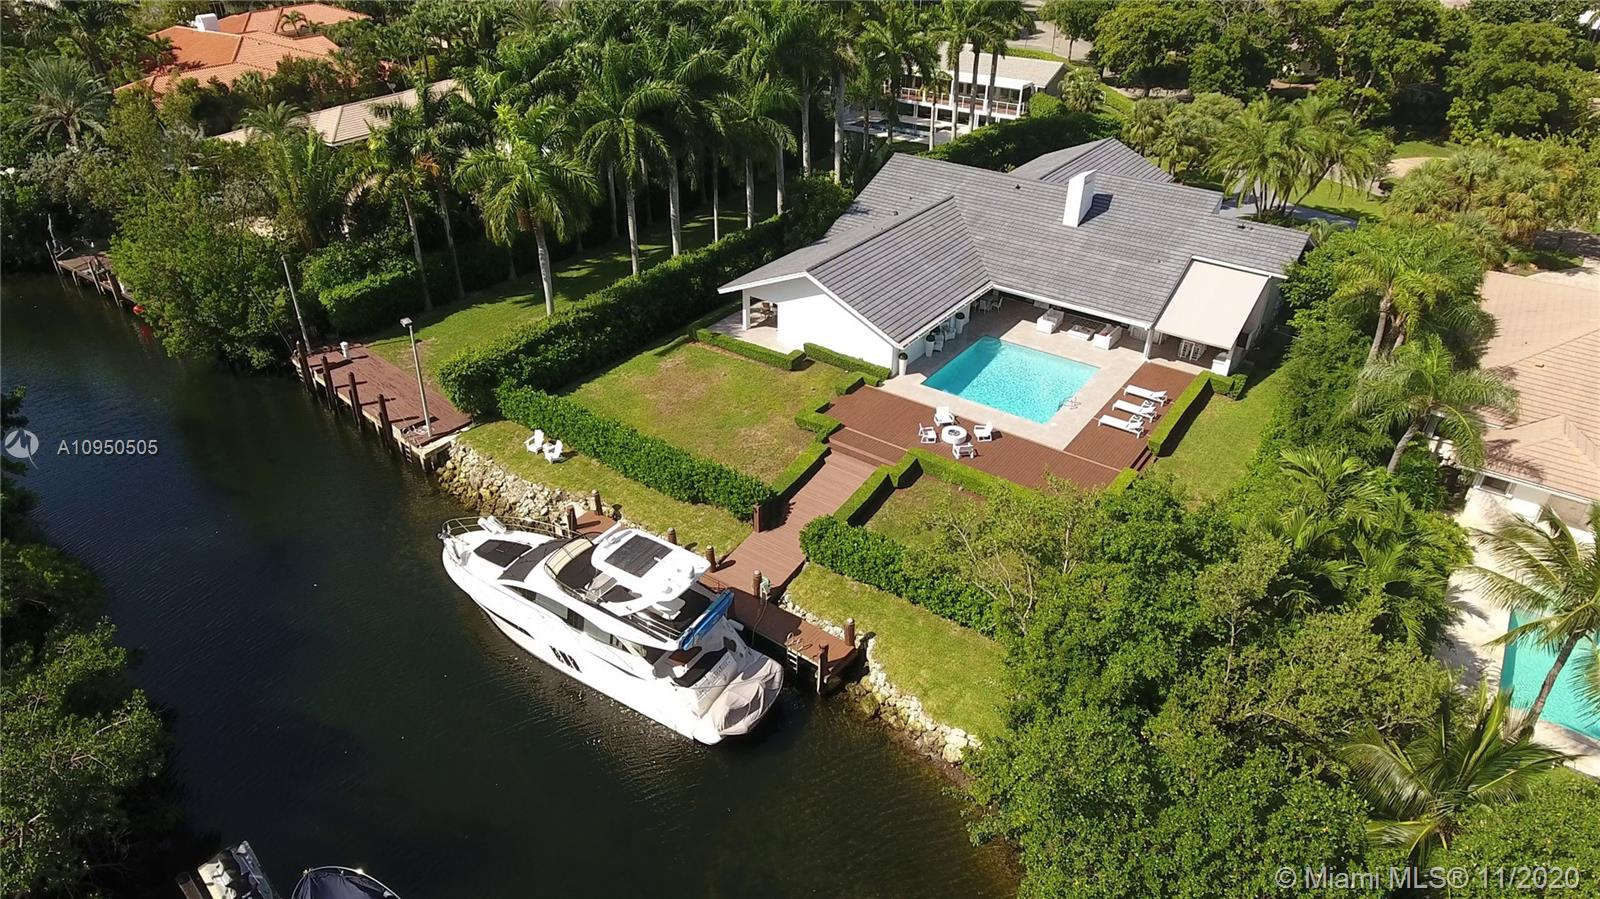 Beautiful waterfront home on a 27,908 sqft lot located in the coveted & gated Cocoplum. Gracious floor plan features living & dining rm that open to the outdoor terrace & pool area. Large eat-in kitchen, separate laundry rm & huge family rm w/balcony. The main suite overlooks the pool area & features a walk-in closet, spacious bath w/it's own private terrace. There are 2 additional bedrms each one w/a bathrm in this wing. The other wing includes an office, guest bedrm w/it's own bath & a full cabana bath leading to the pool area. Enjoy the outdoors w/a spacious covered terrace, outdoor kitchen & bar, pool & dock. This property has a 114 ft waterfront w/ocean access. 2-car garage w/custom cabinets. New roof & impact windows and doors installed in 2019. Cocoplum Sec 1 is special tax district